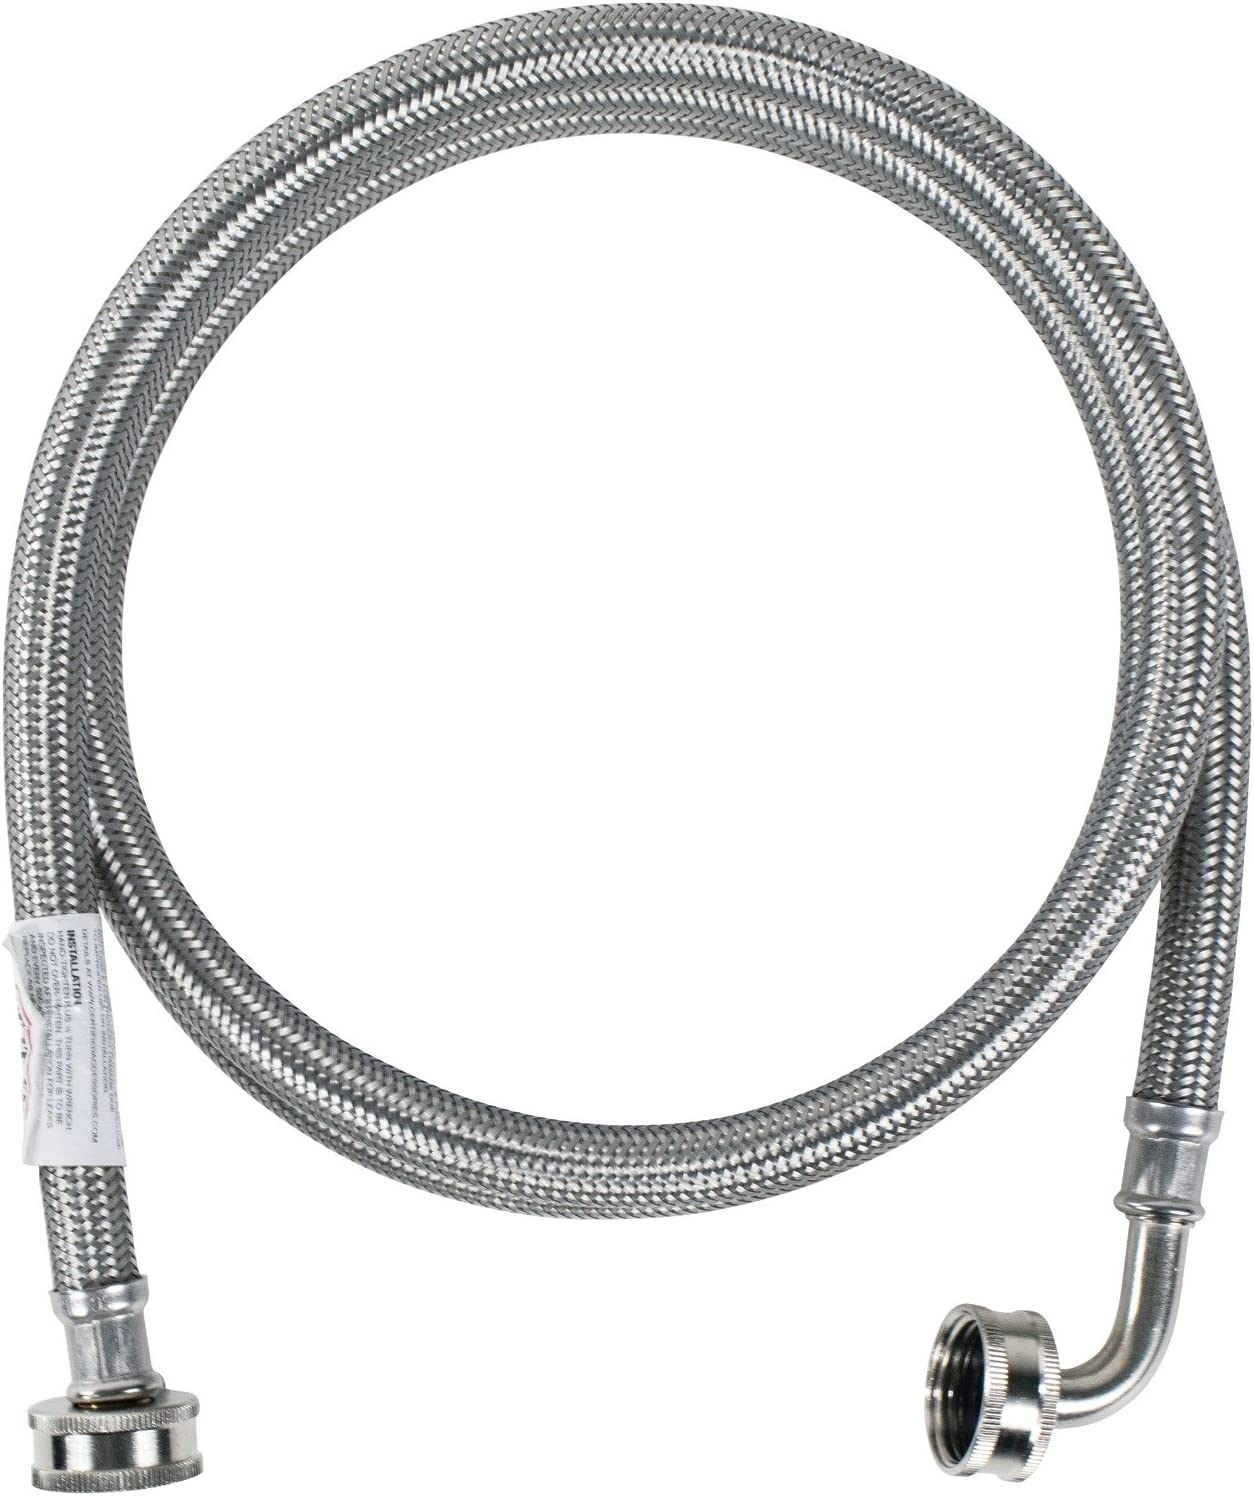 Certified Appliance Sale Special Price Accessories Washing Machine with Rapid rise 90 Deg Hose